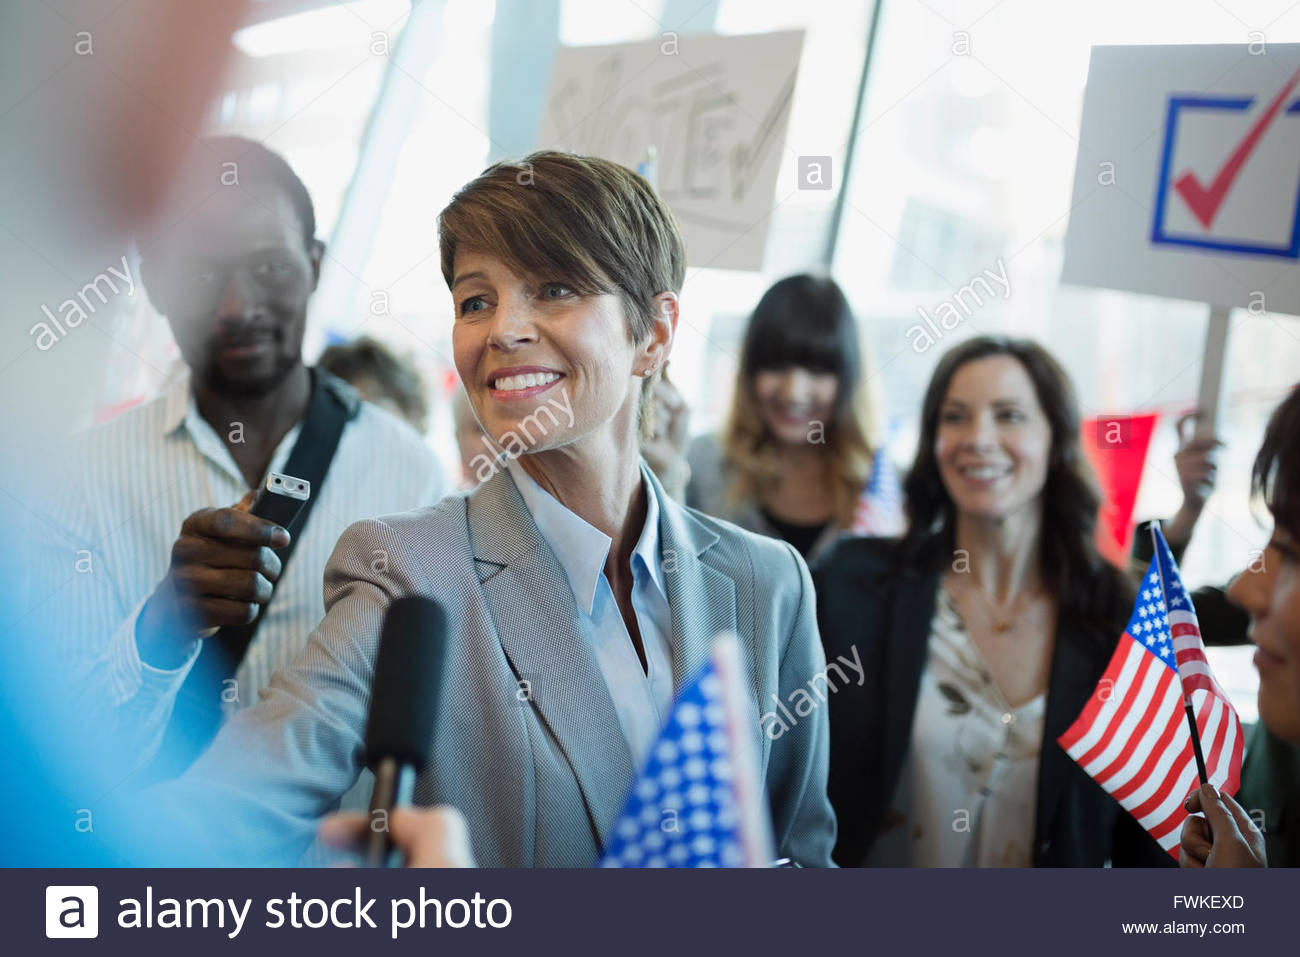 Smiling female politician greeting media and audience - Stock Image